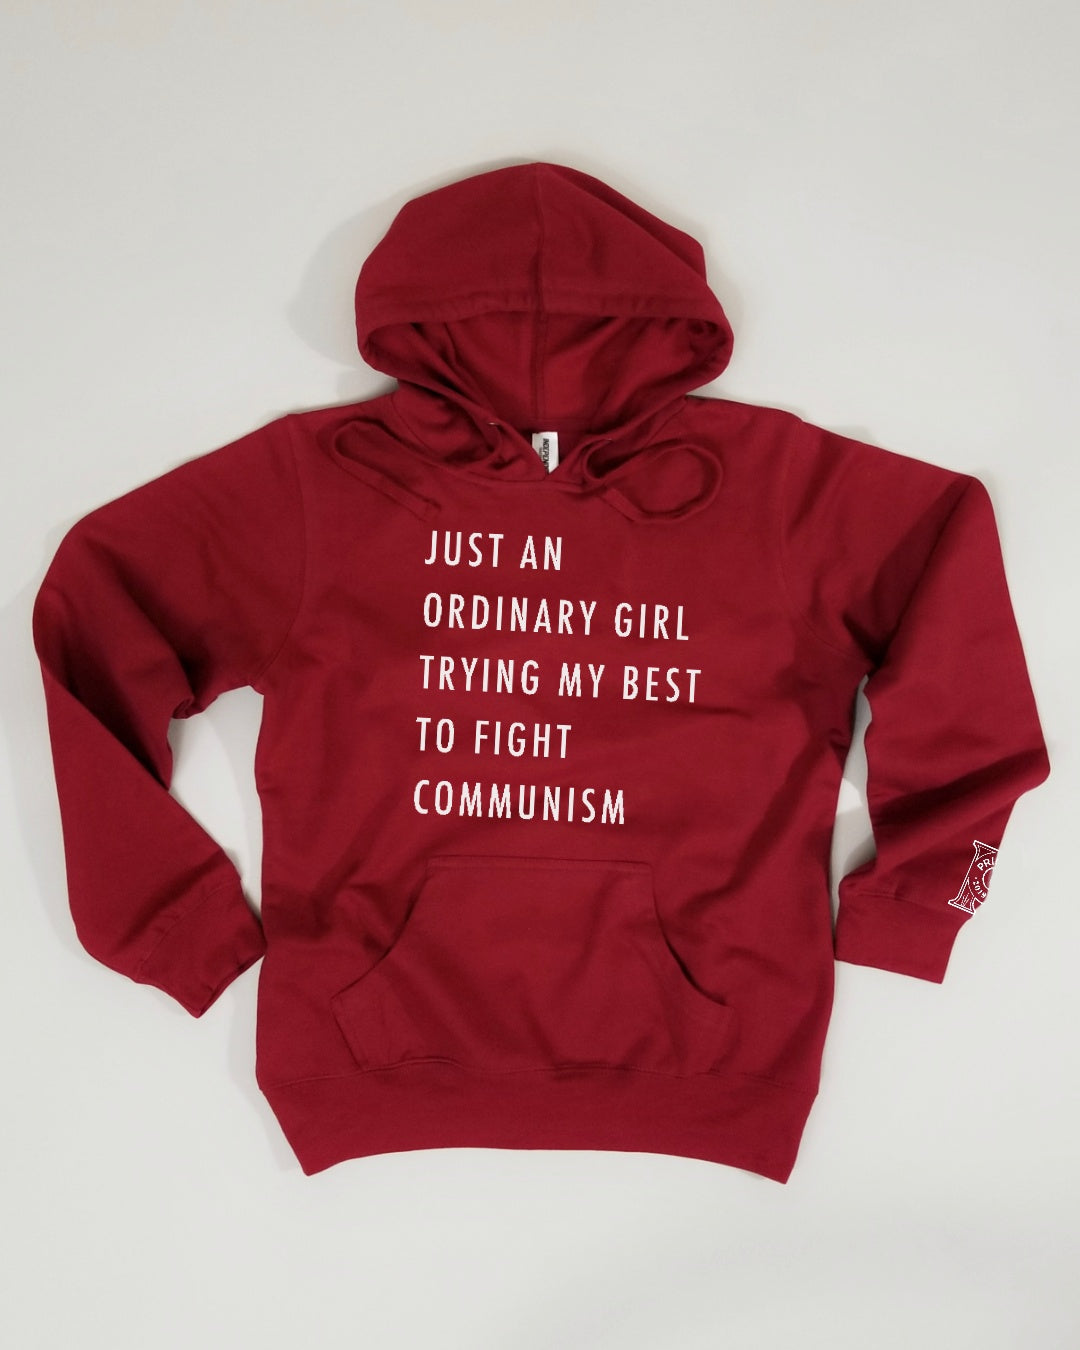 Women's hoodie - Just an Ordinary Girl Trying My Best to Fight Communism